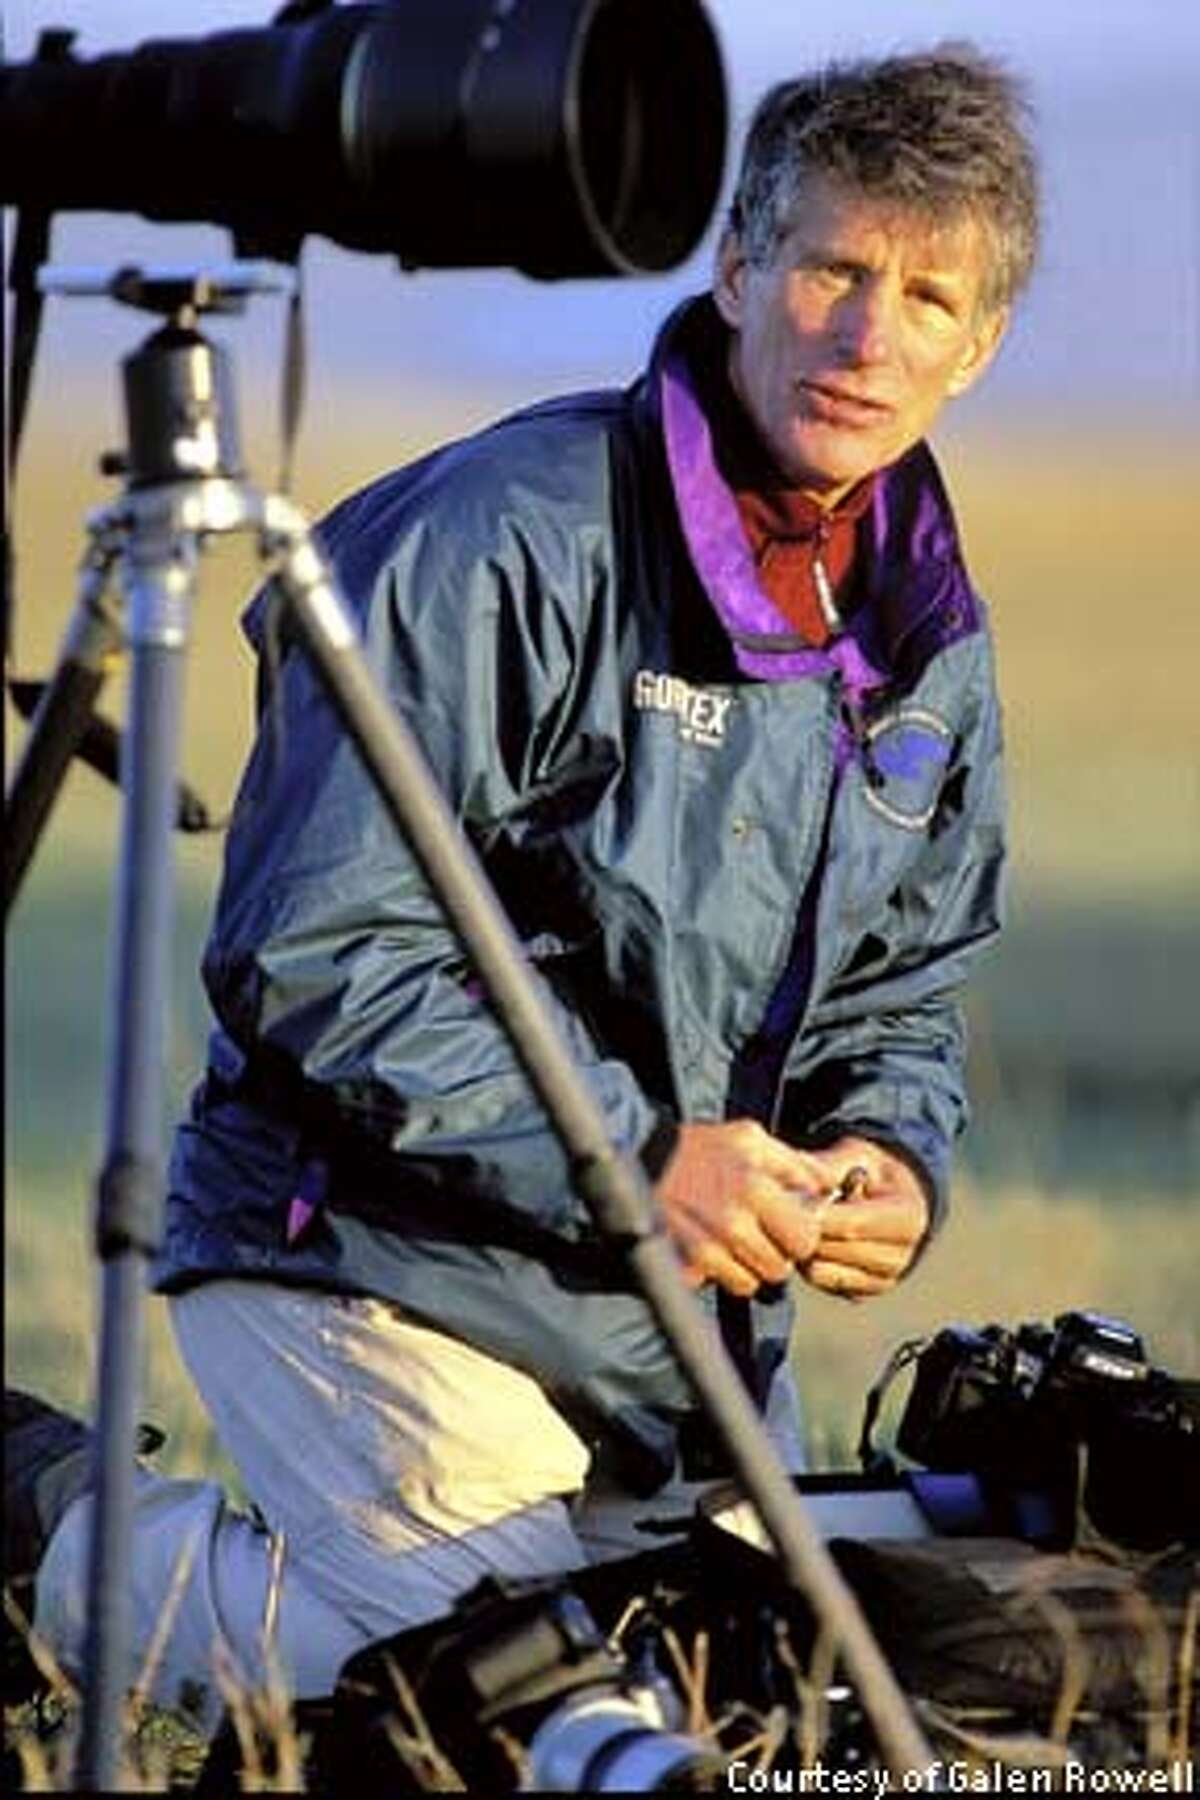 Nature photographers Galen Rowell (shown here in a recent photo), along with his wife Barbara, were killed Sunday in a plane crash outside Bishop Calif. Photo Courtesy of Mountain Light Photography